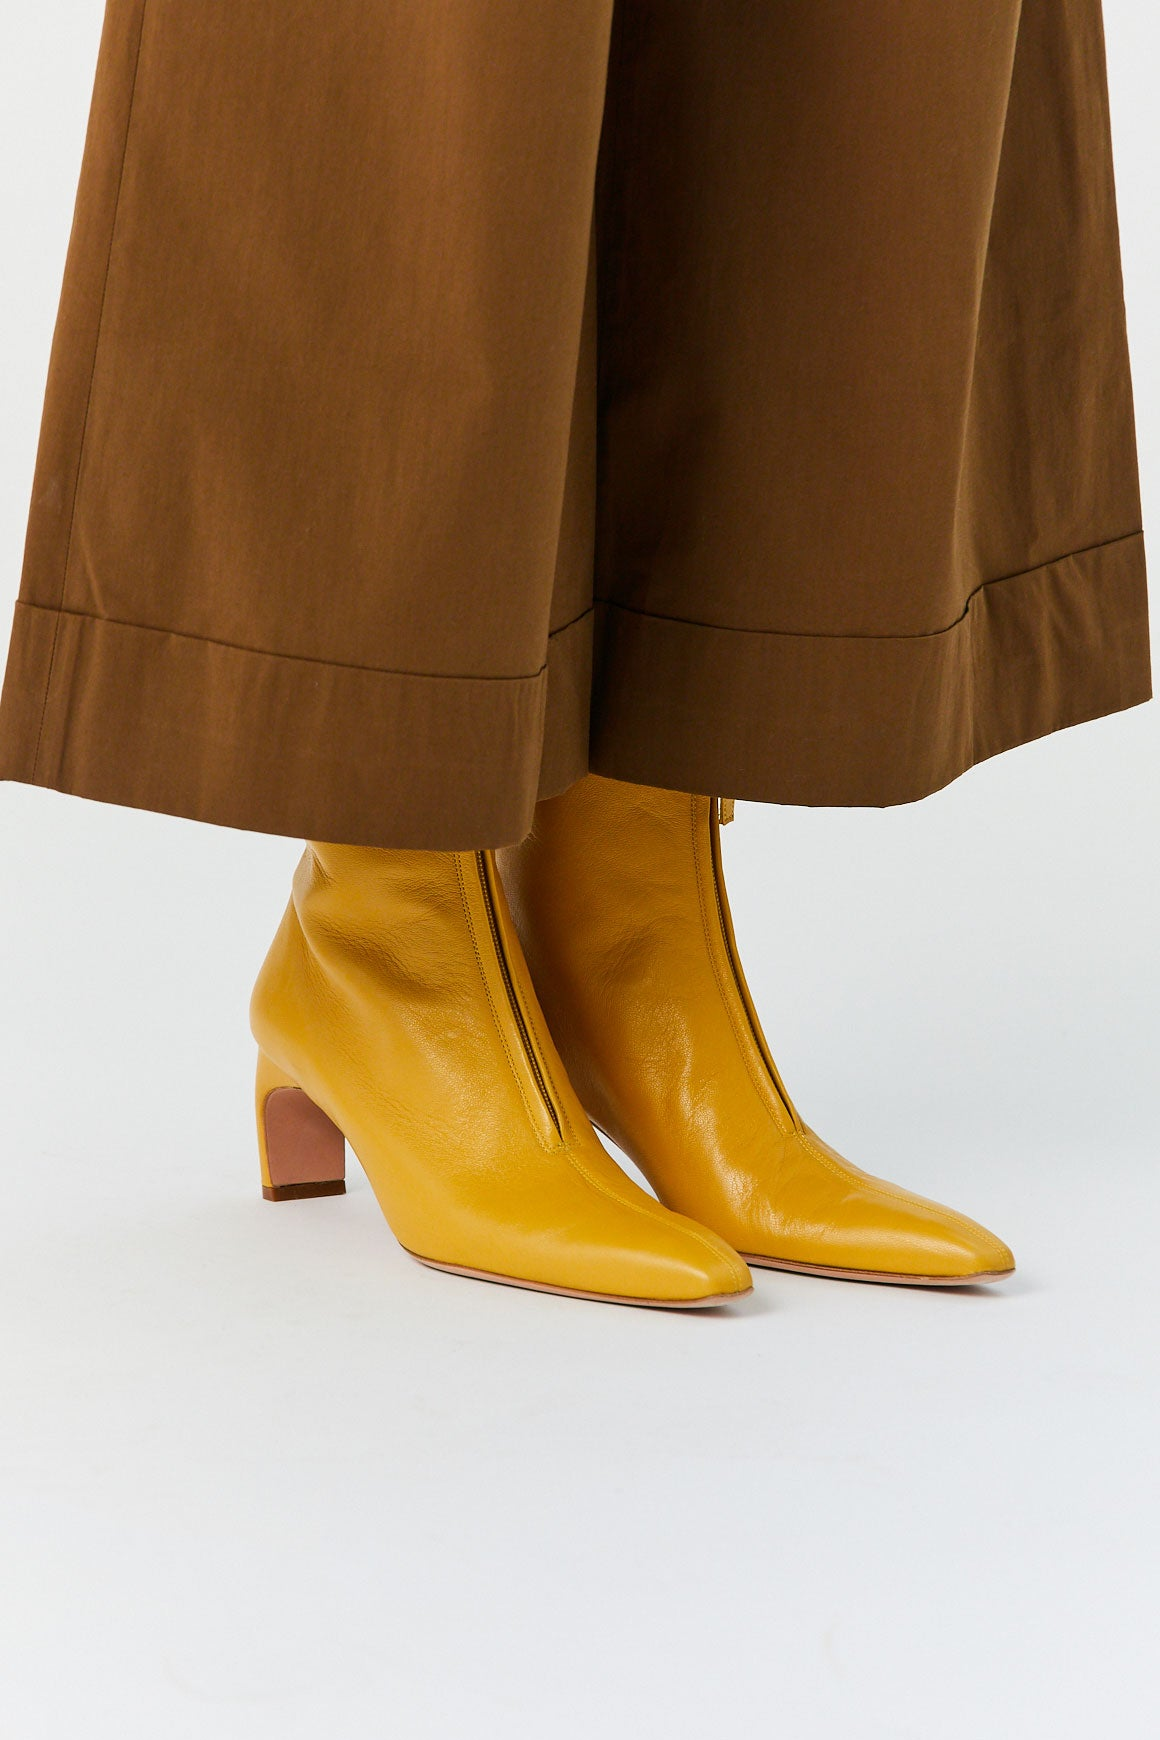 ROSETTA GETTY - Ankle Boot, Yellow